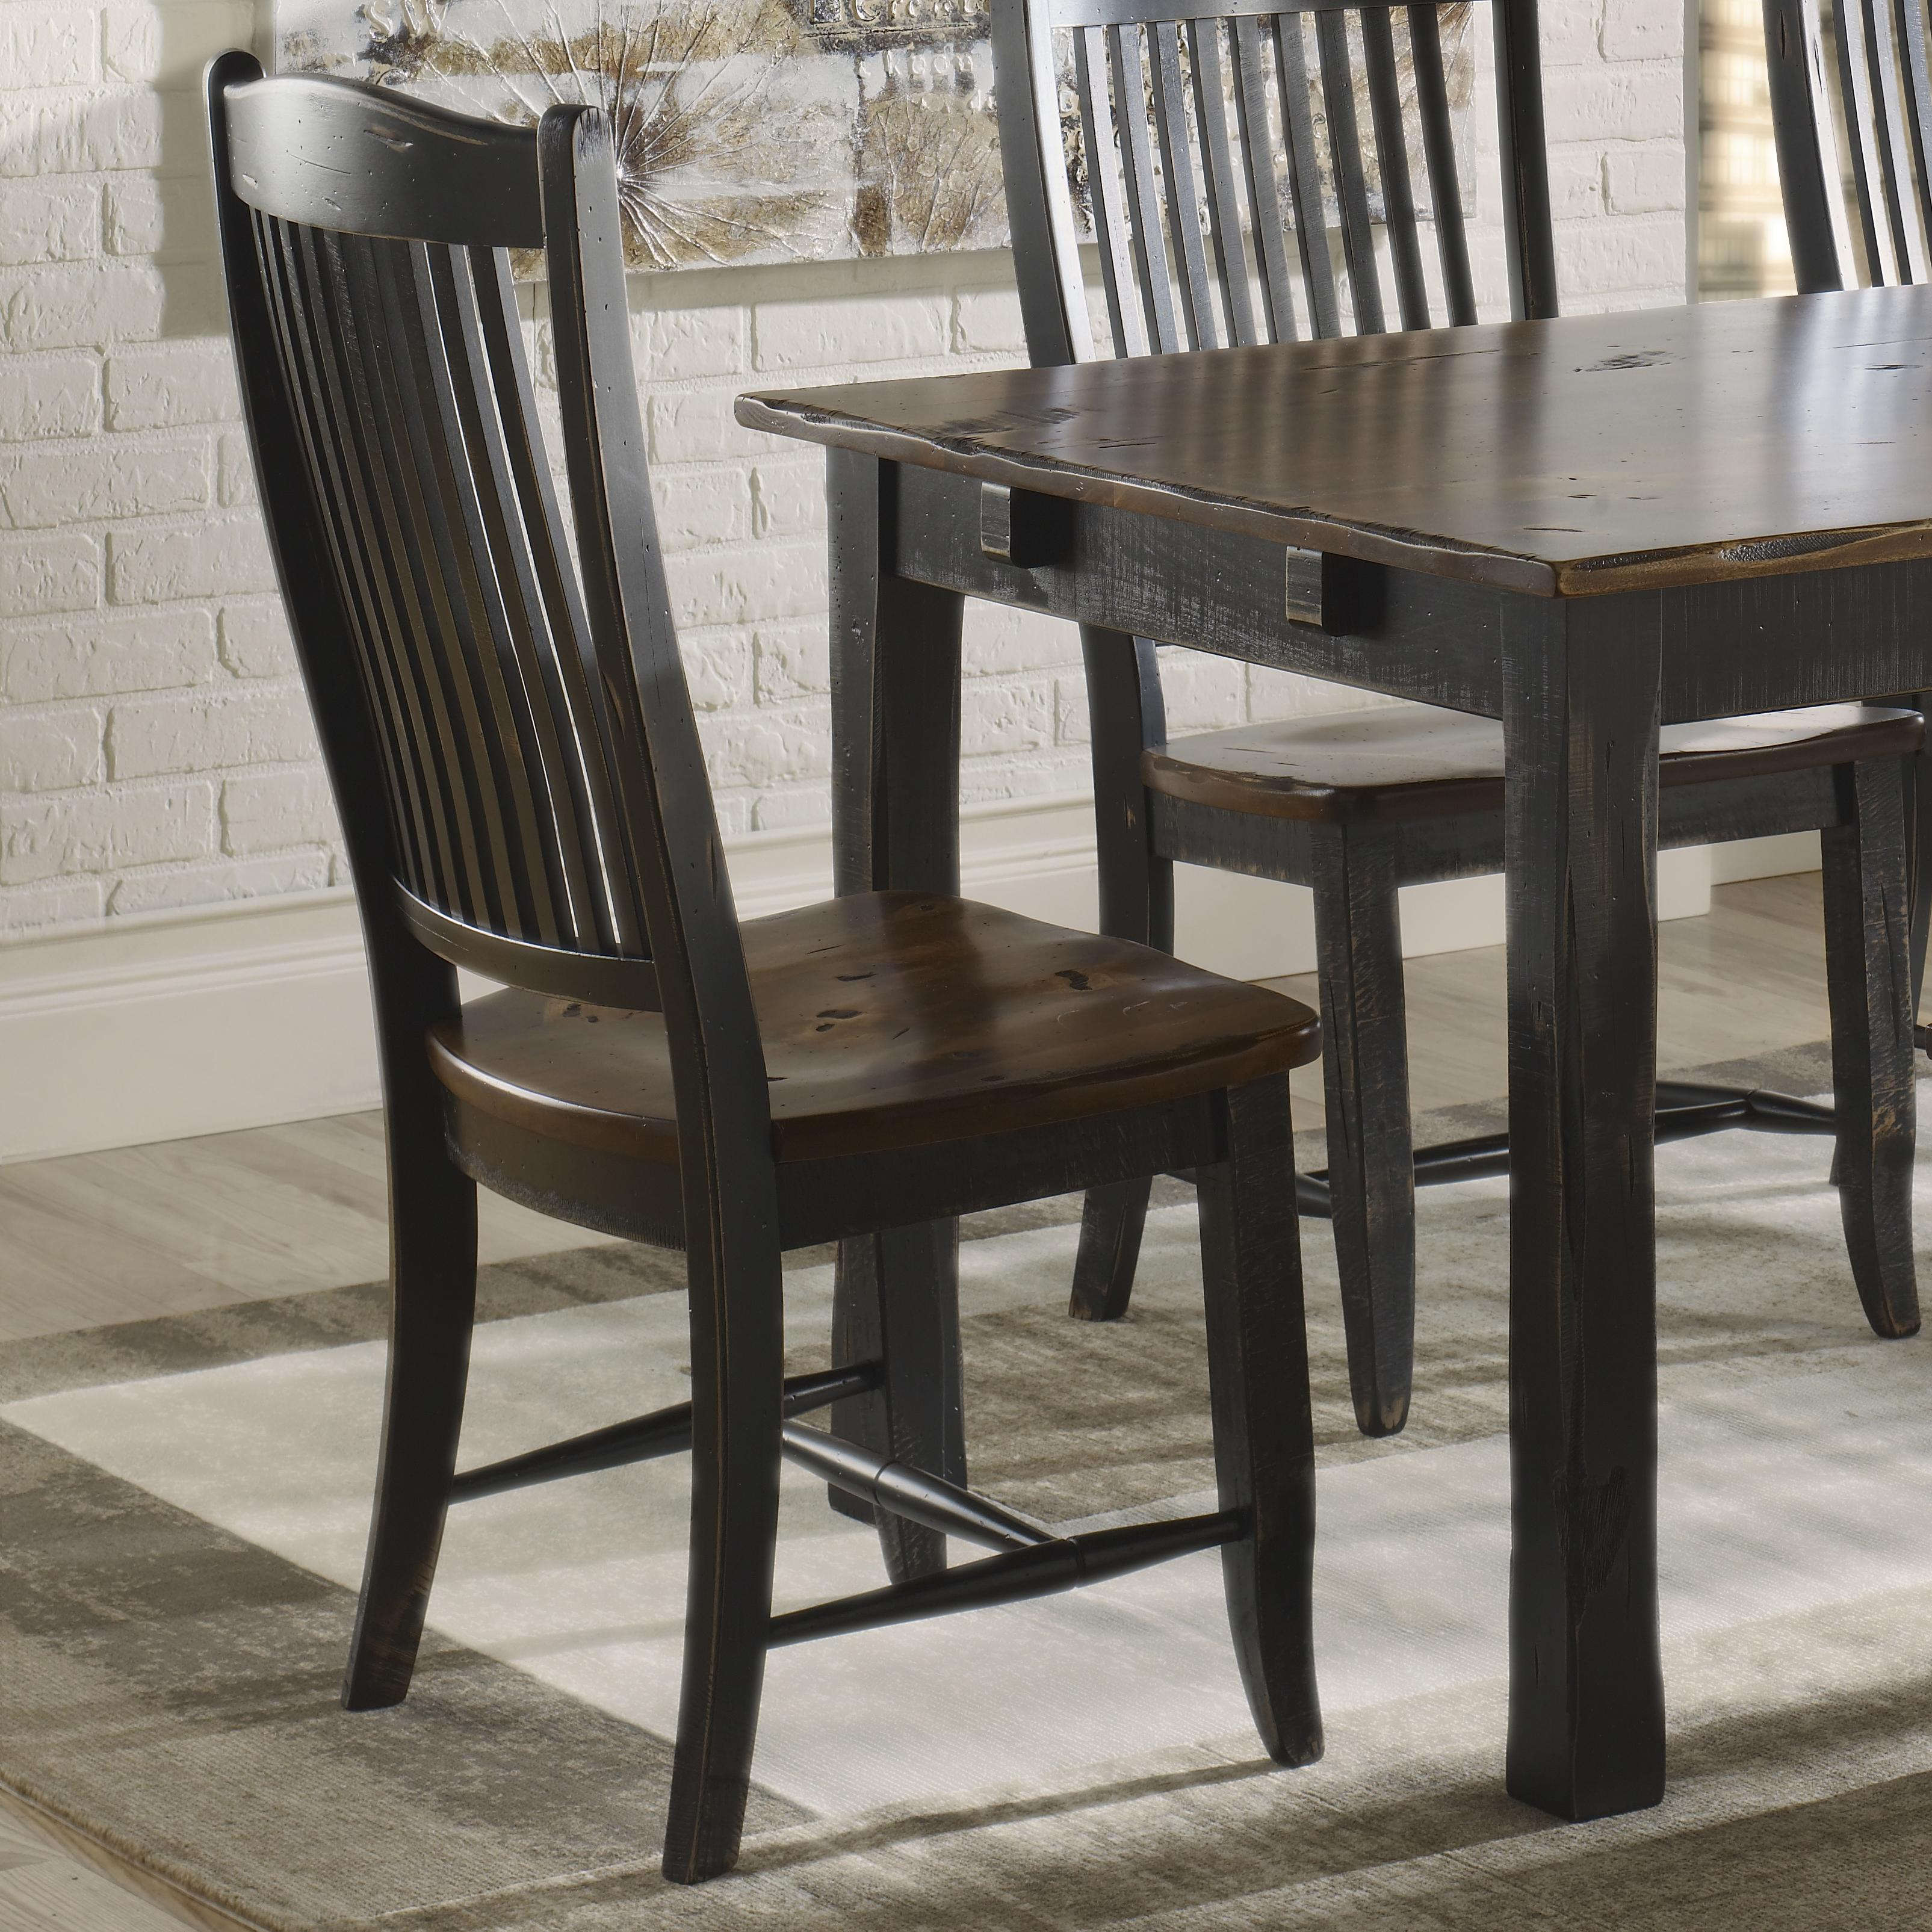 Canadel Champlain - Custom Dining <b>Customizable</b> Side Chair - Item Number: CHA002323363DPC